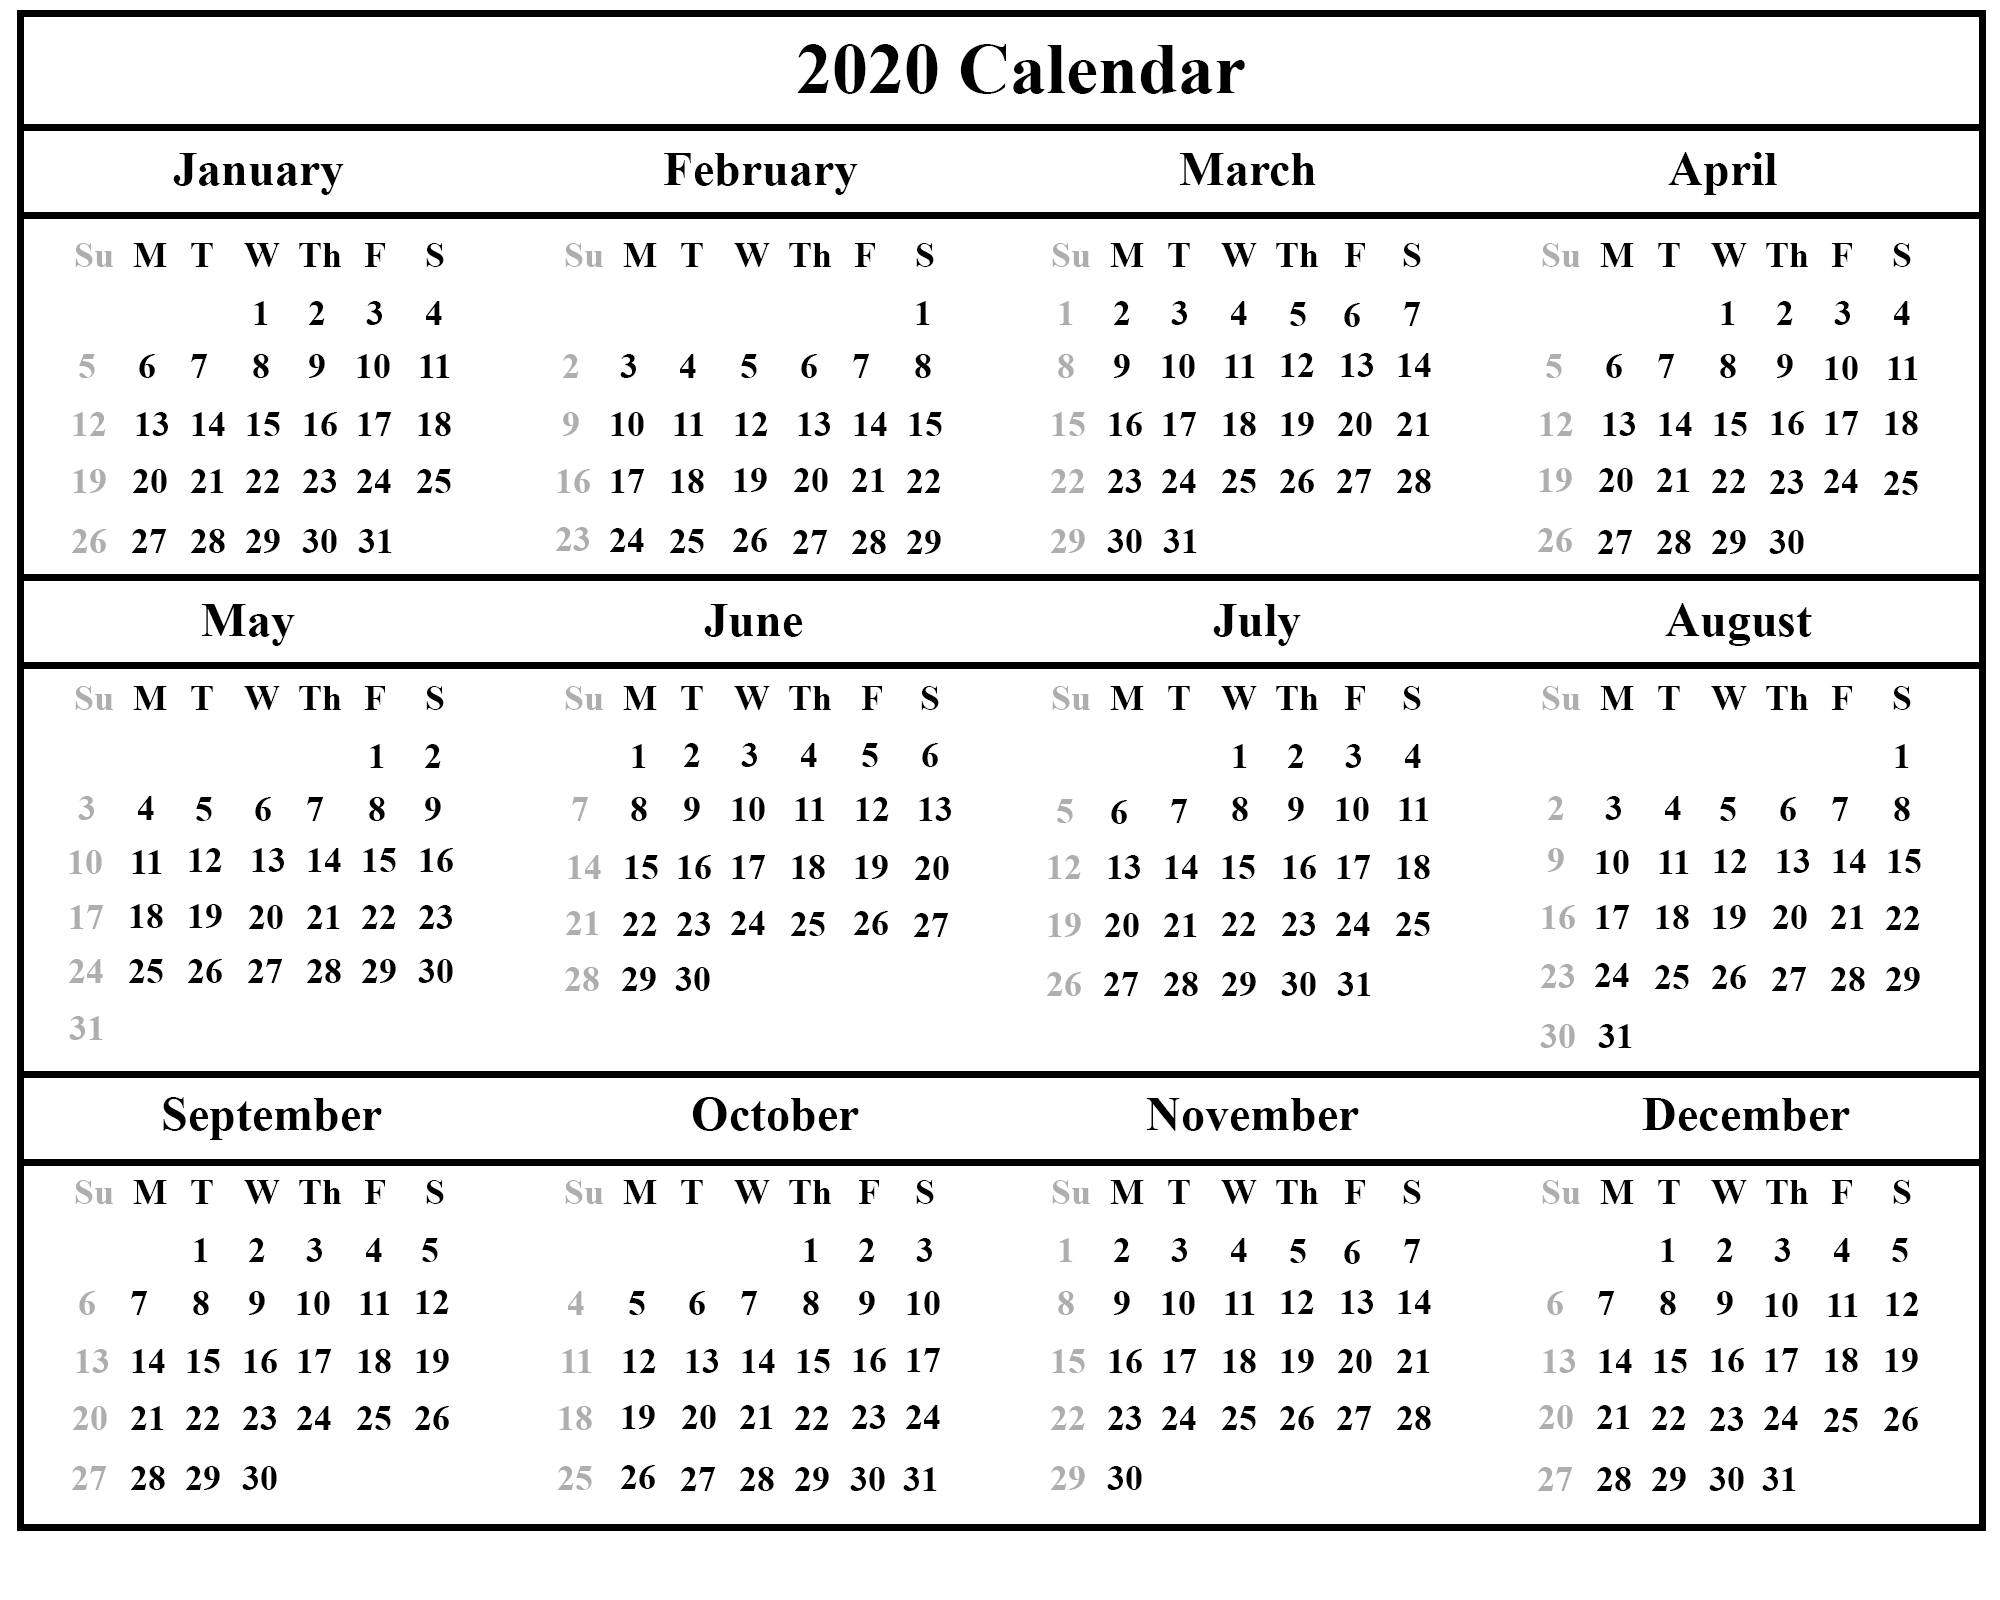 image regarding Calendar 2020 Printable identified as Printable Annually Calendar 2020 Template With Vacations [PDF